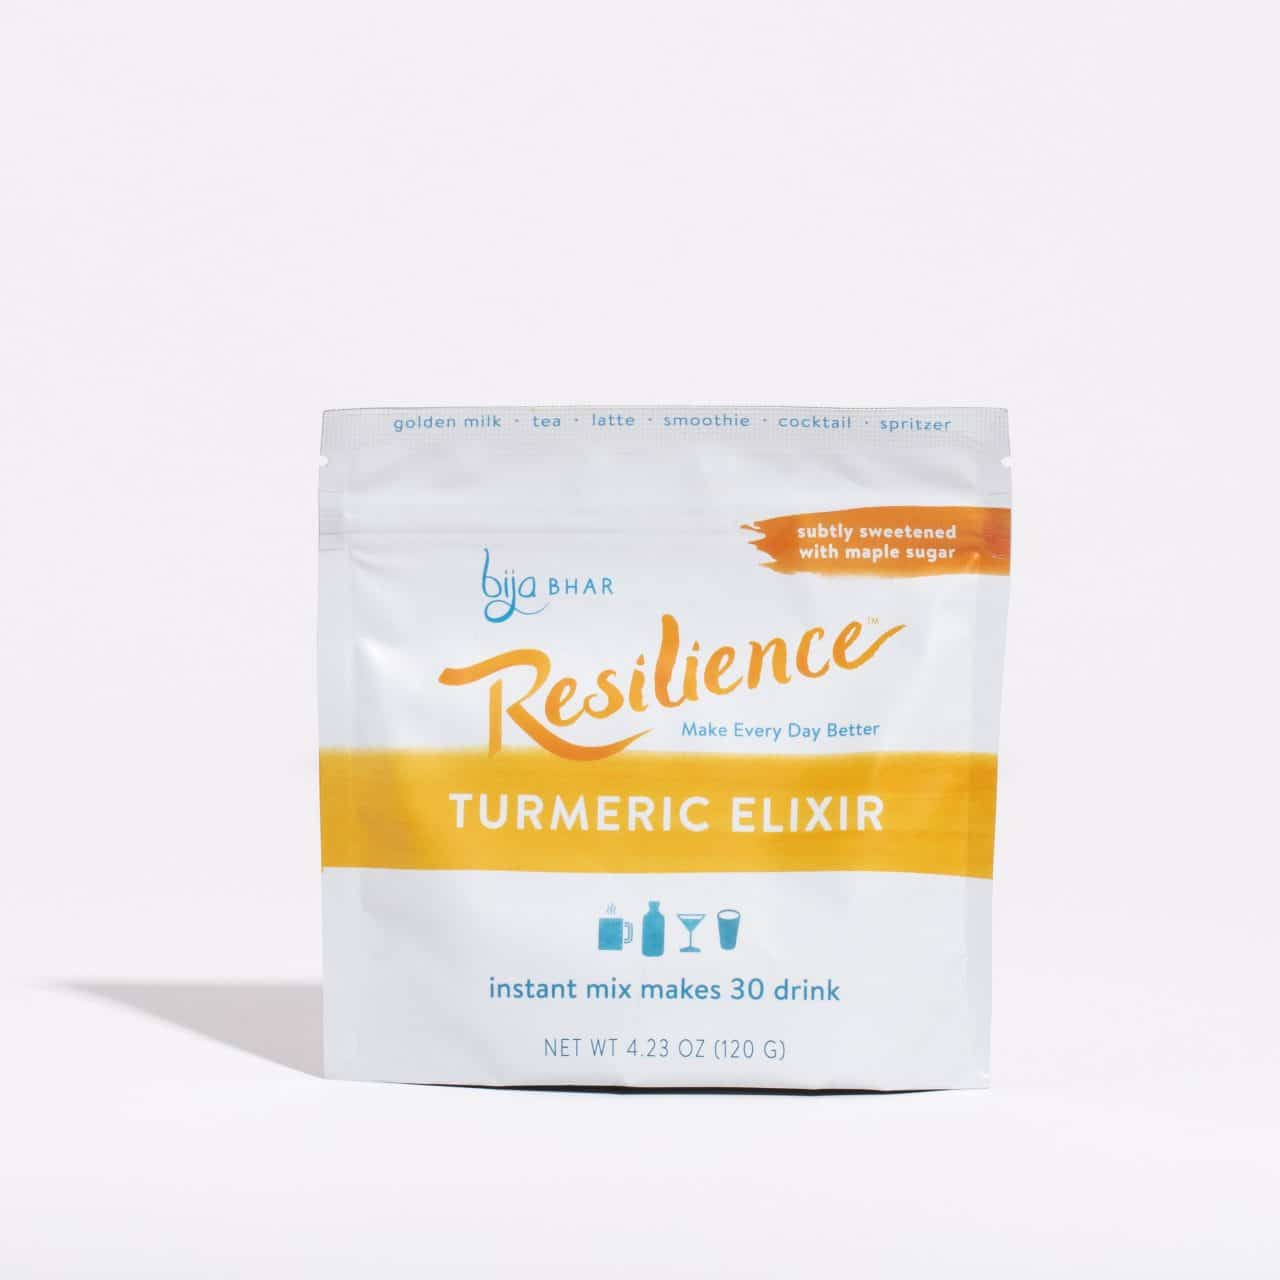 Resilience Turmeric Elixir 30 serving pouch